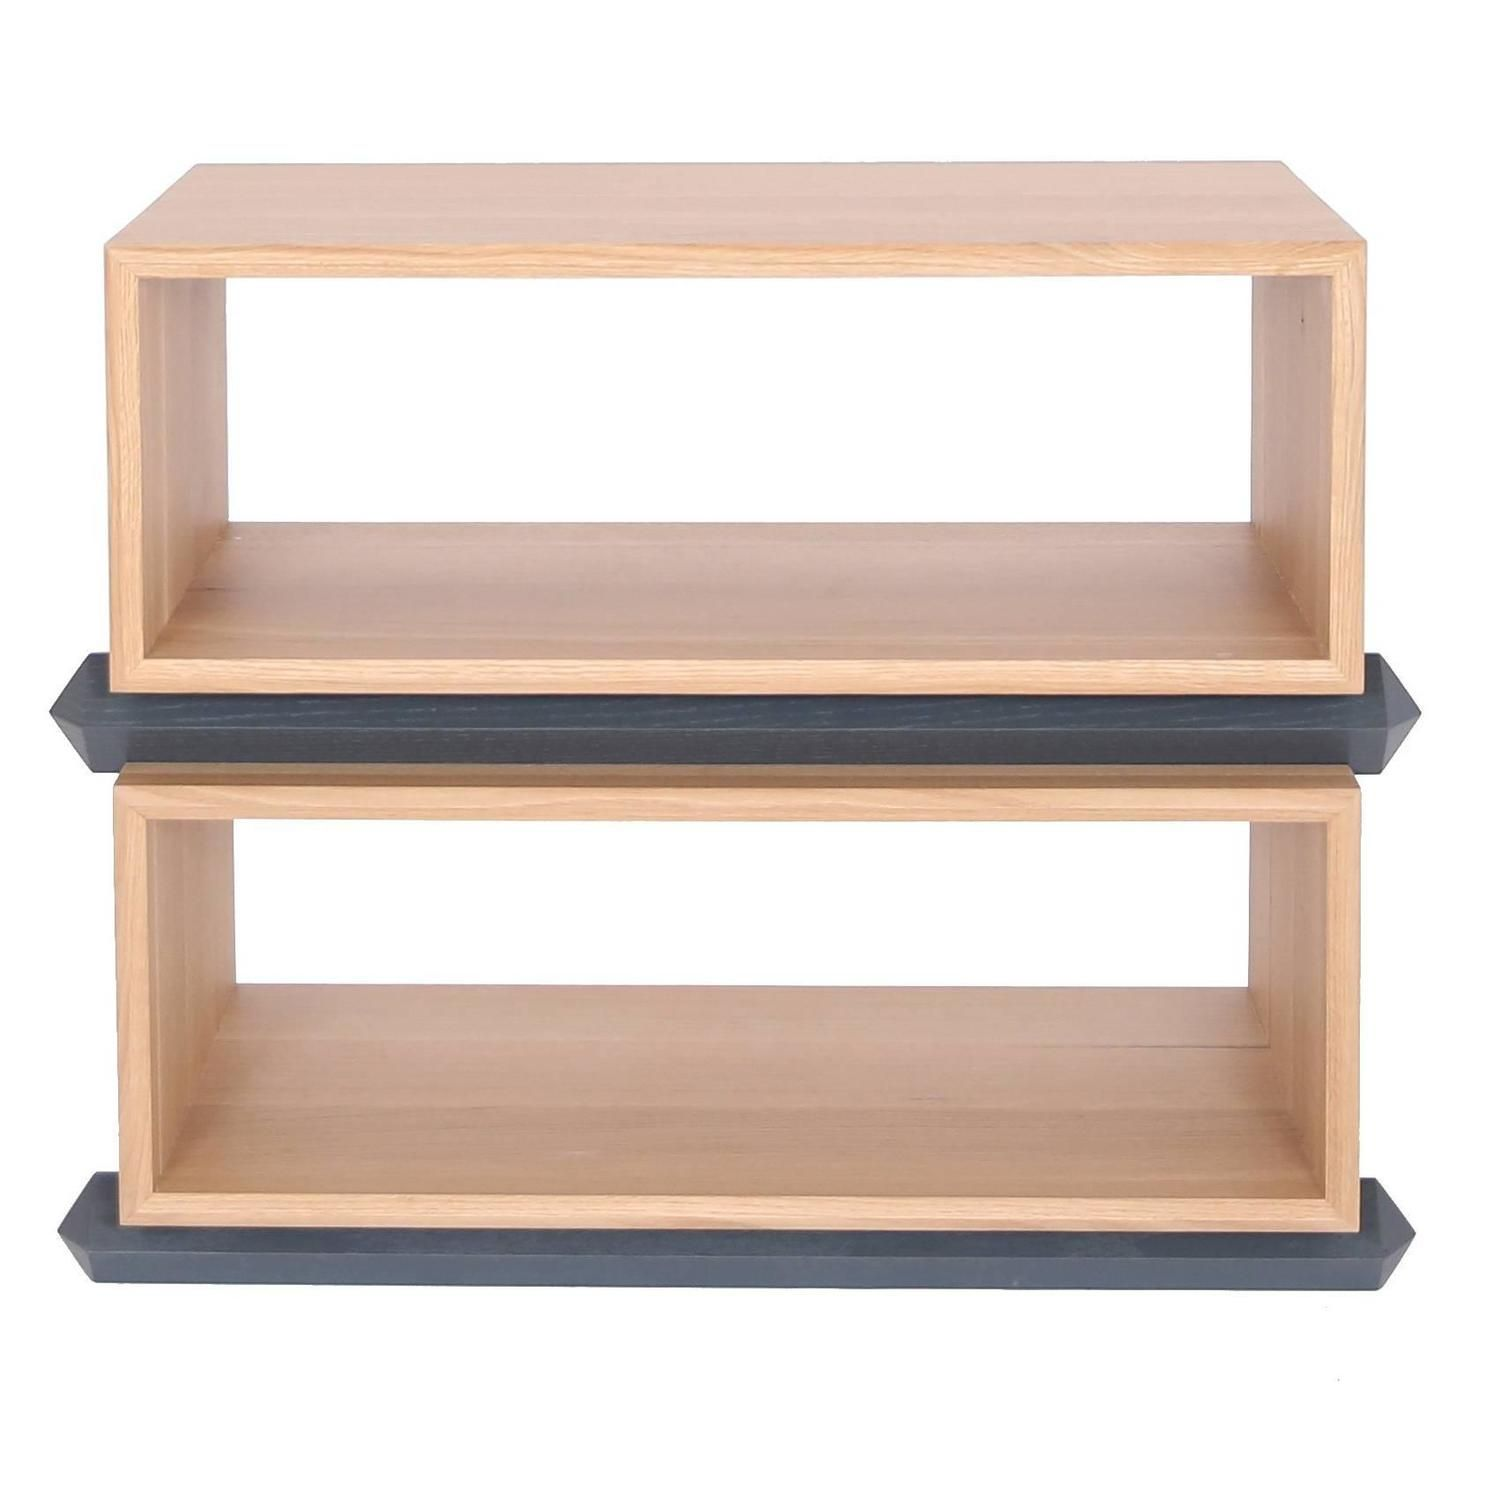 Stack Storage Two Tier Wood Open Shelves